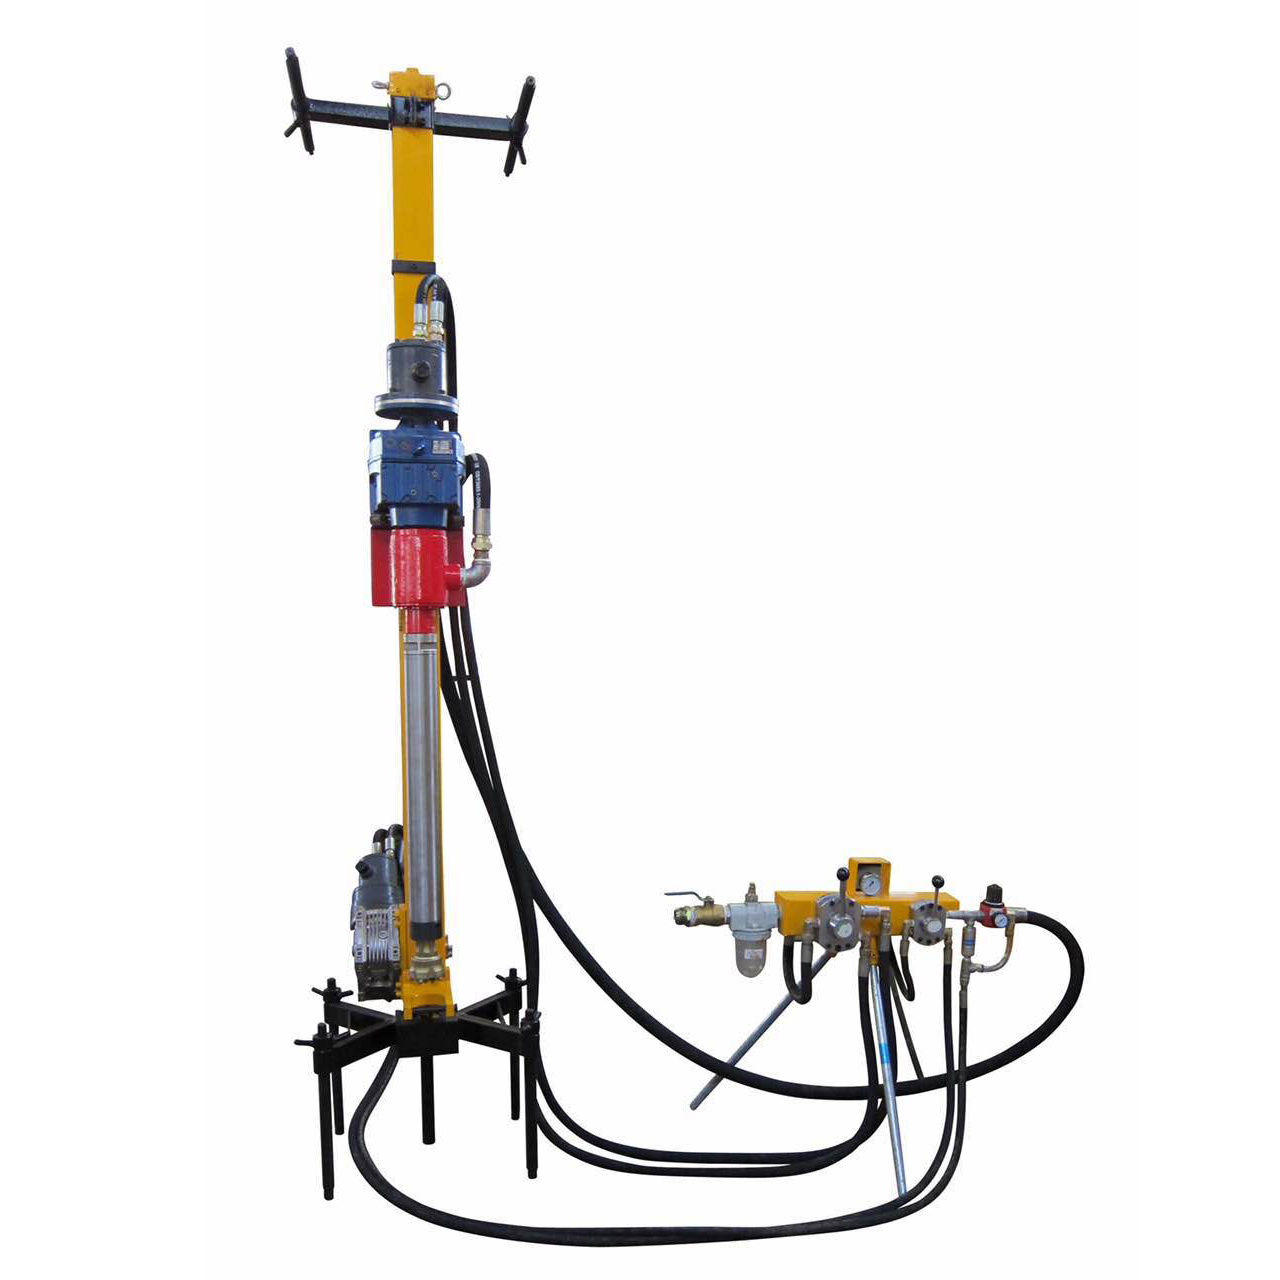 PD65-90B Pneumatic DTH Drilling Machine